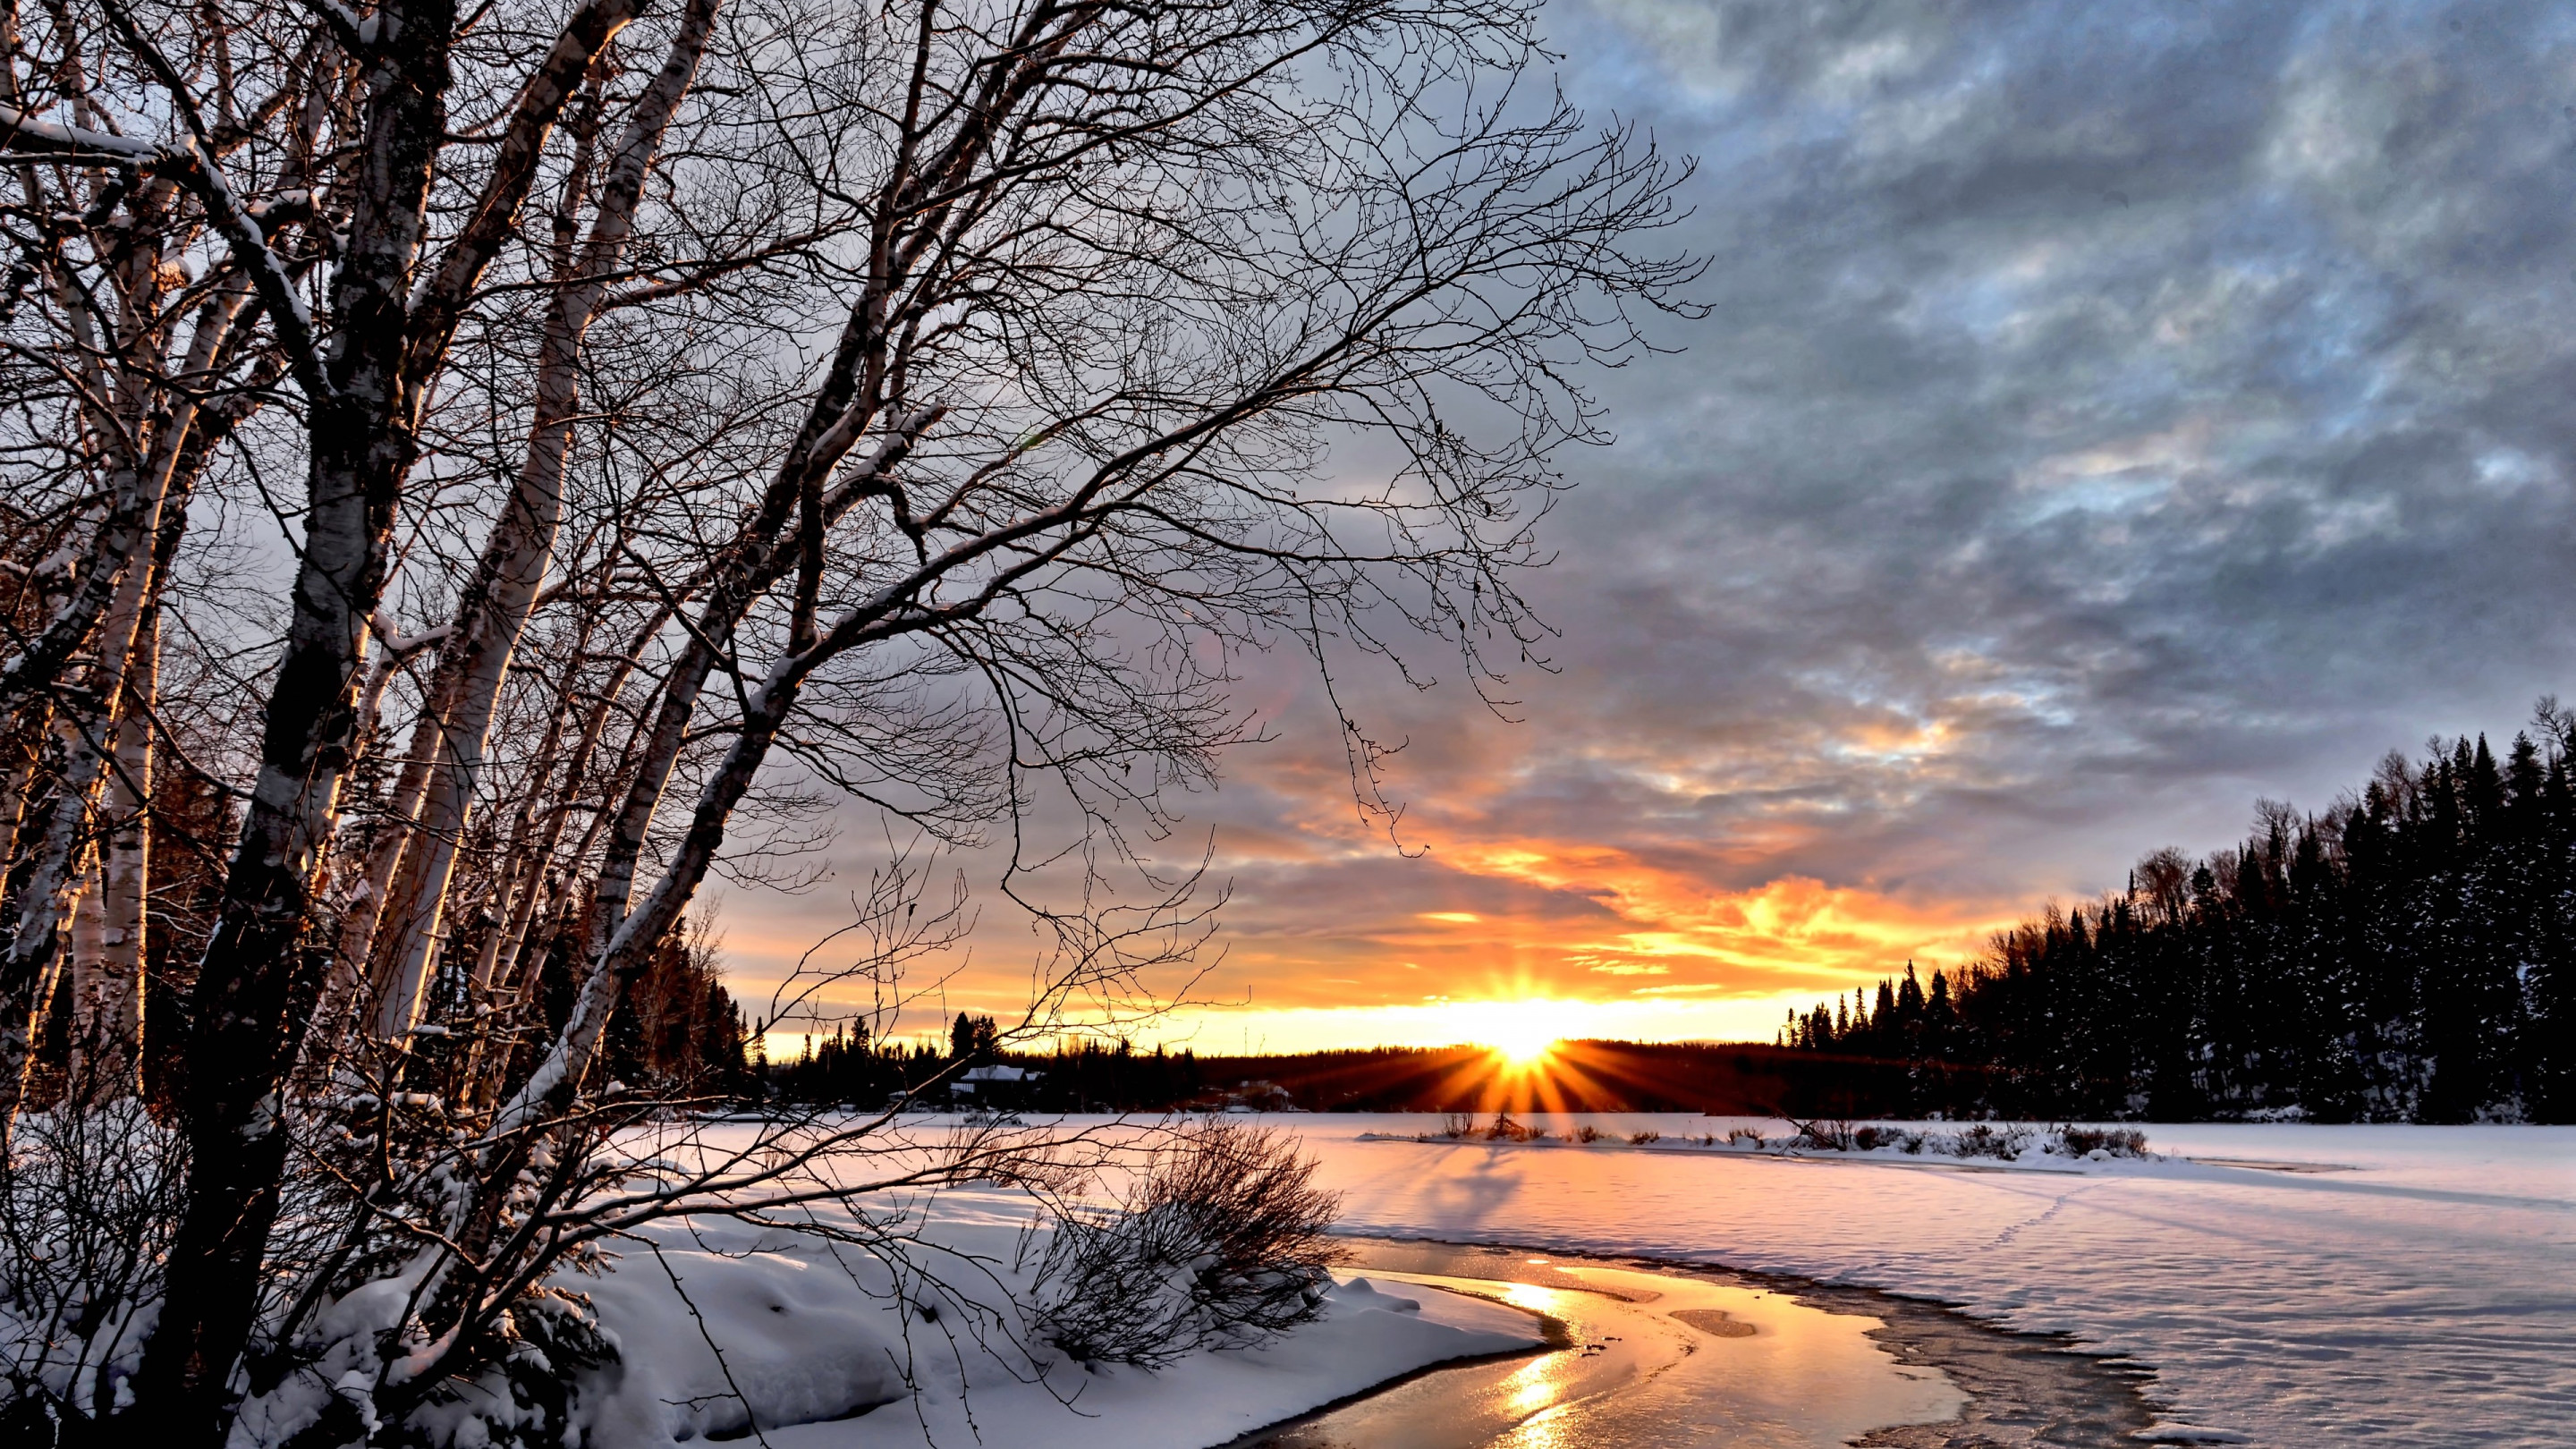 Sunset over the Winter landscape wallpaper 2880x1620